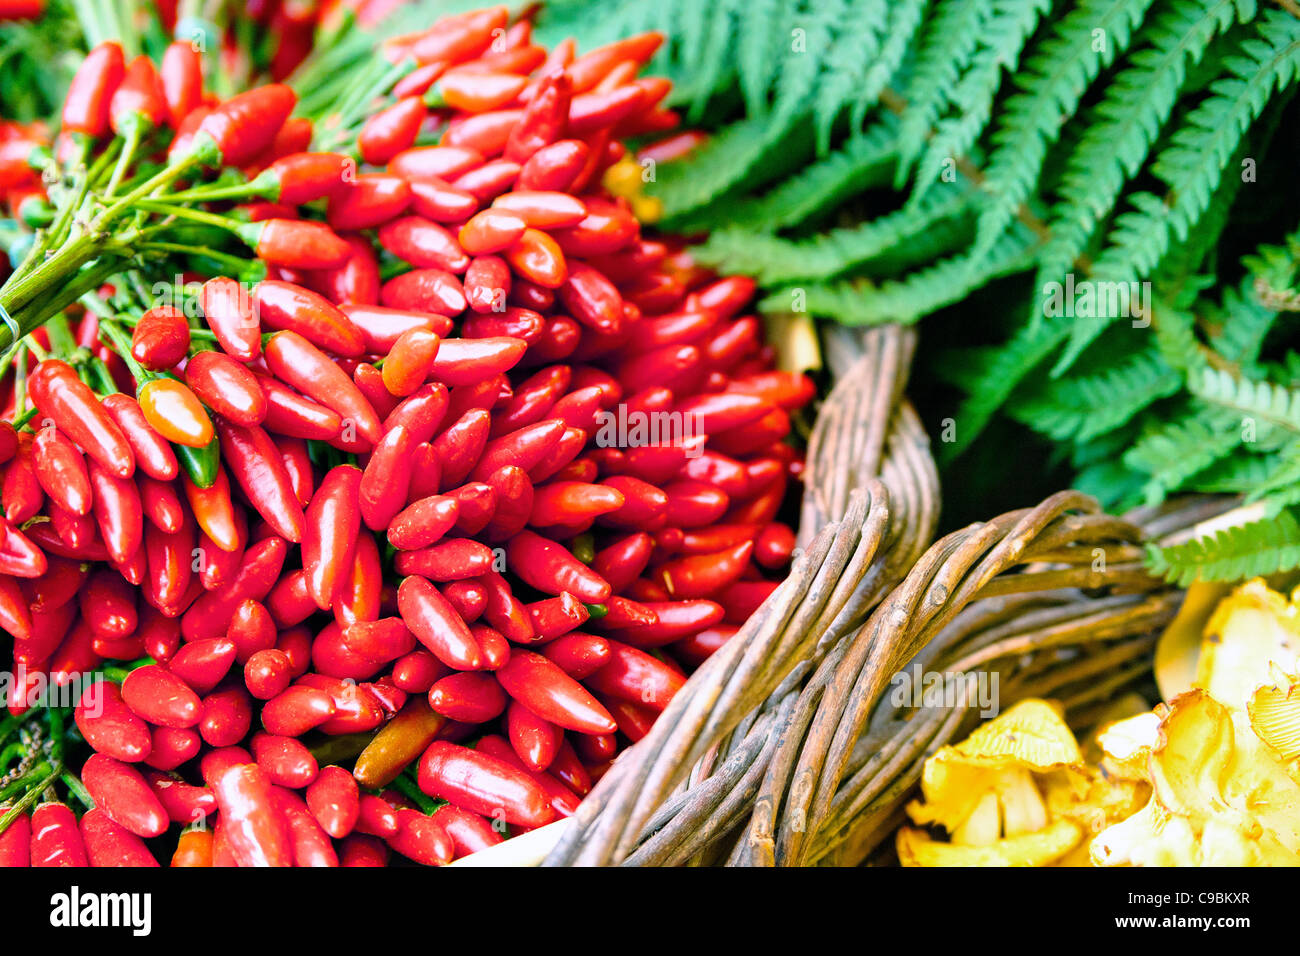 Red hot chili peppers - Stock Image